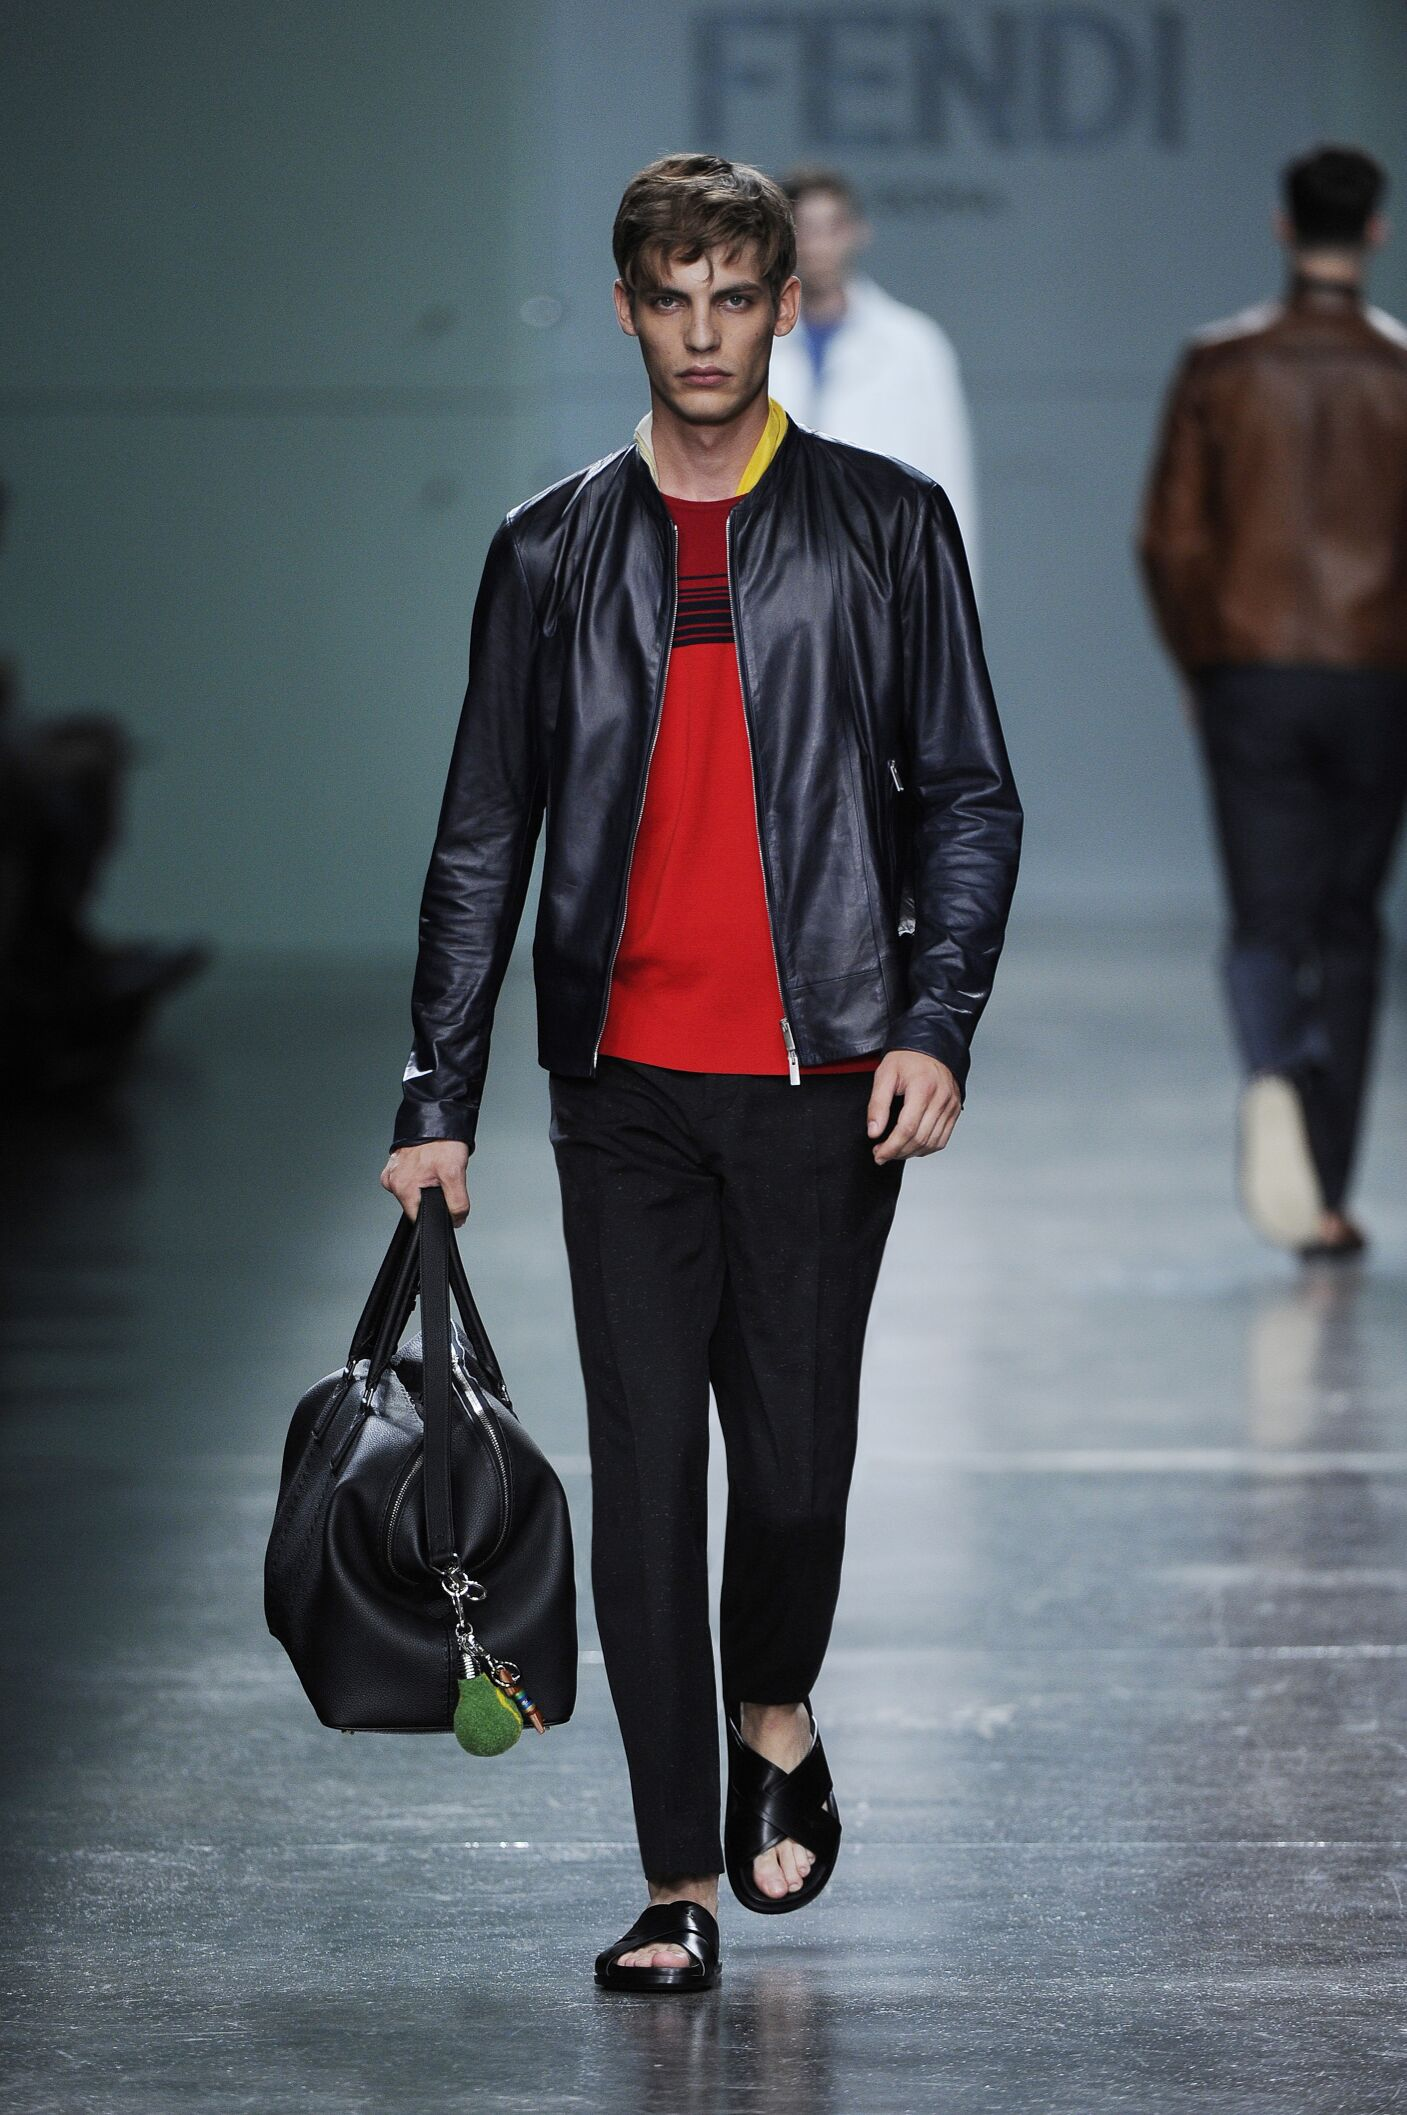 FENDI SPRING SUMMER 2015 MENS COLLECTION  The Skinny Beep